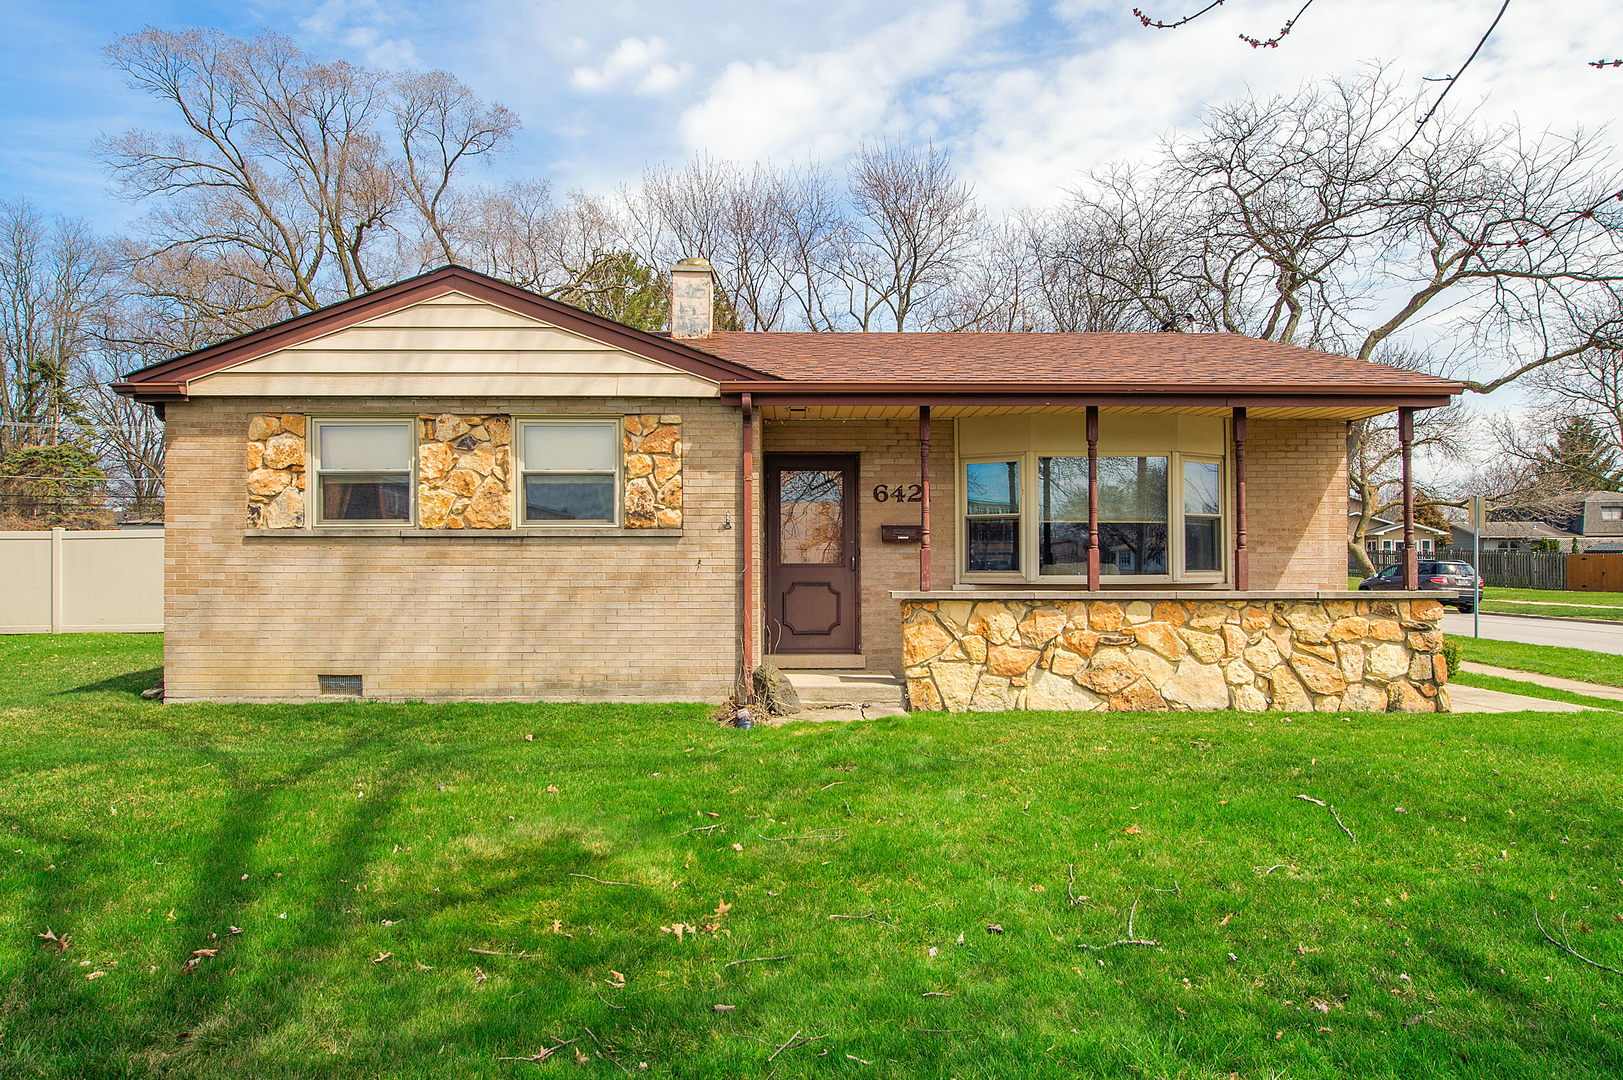 6421 DUNHAM ROAD, DOWNERS GROVE, IL 60516